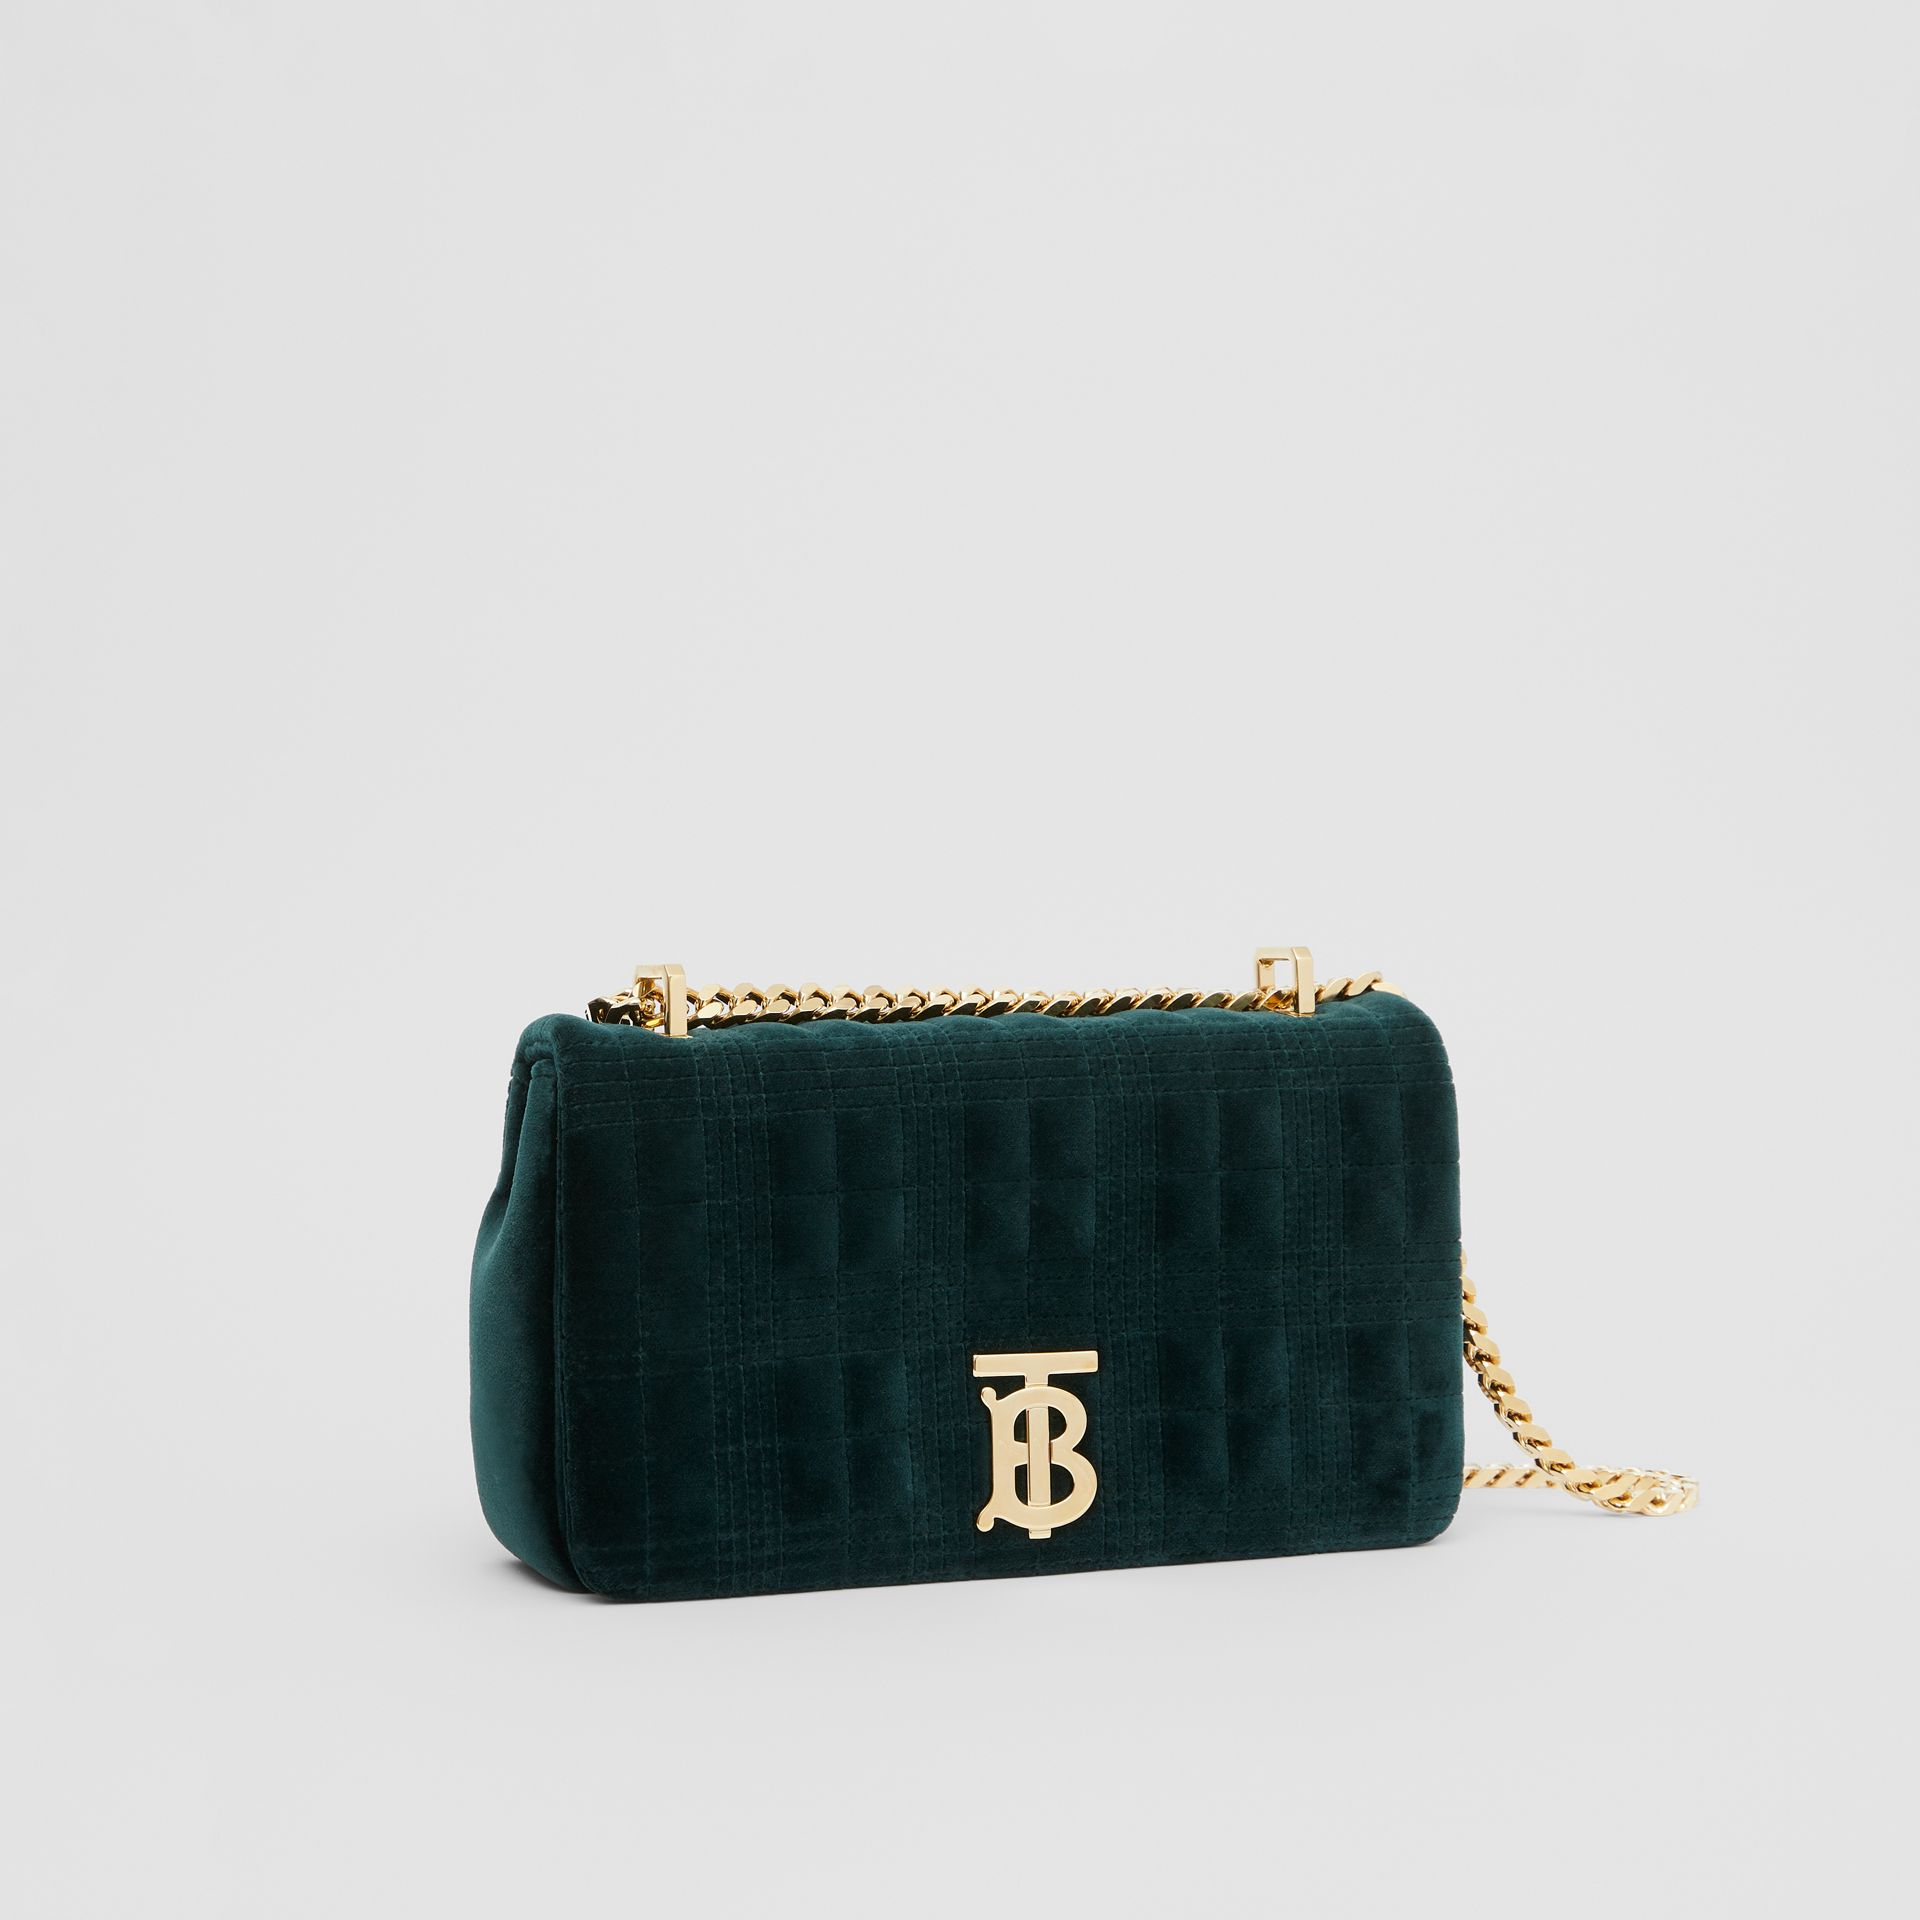 Small Quilted Velvet Lola Bag in Dark Green - Women | Burberry - gallery image 6